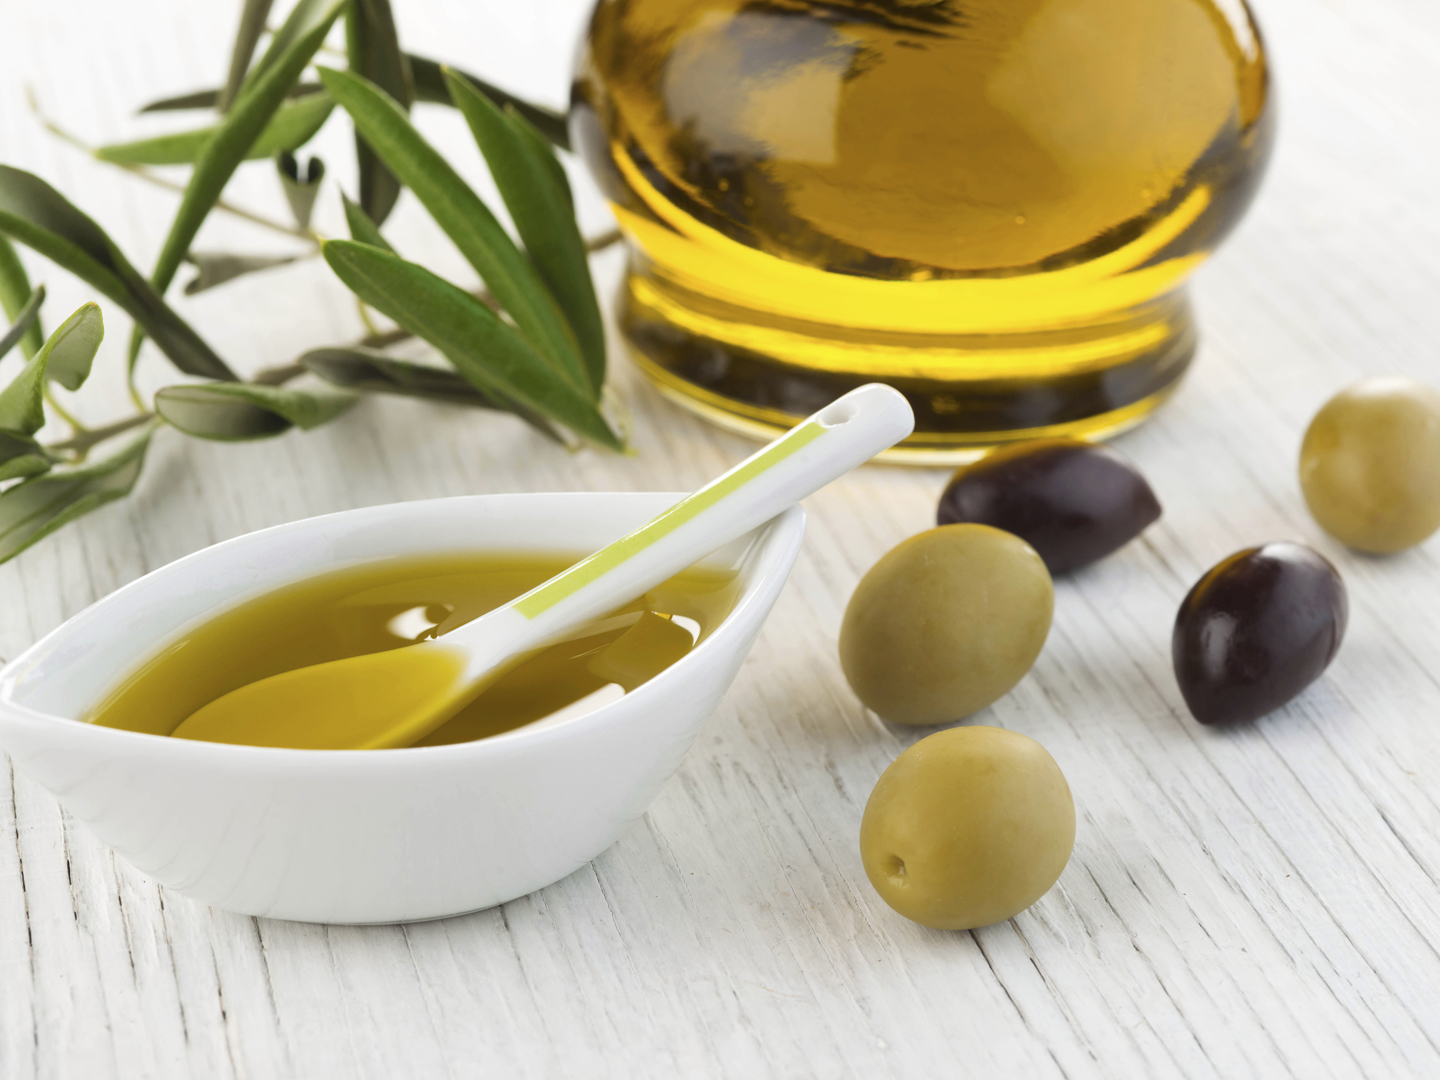 Is Cottonseed Oil Okay? - Dr. Weil